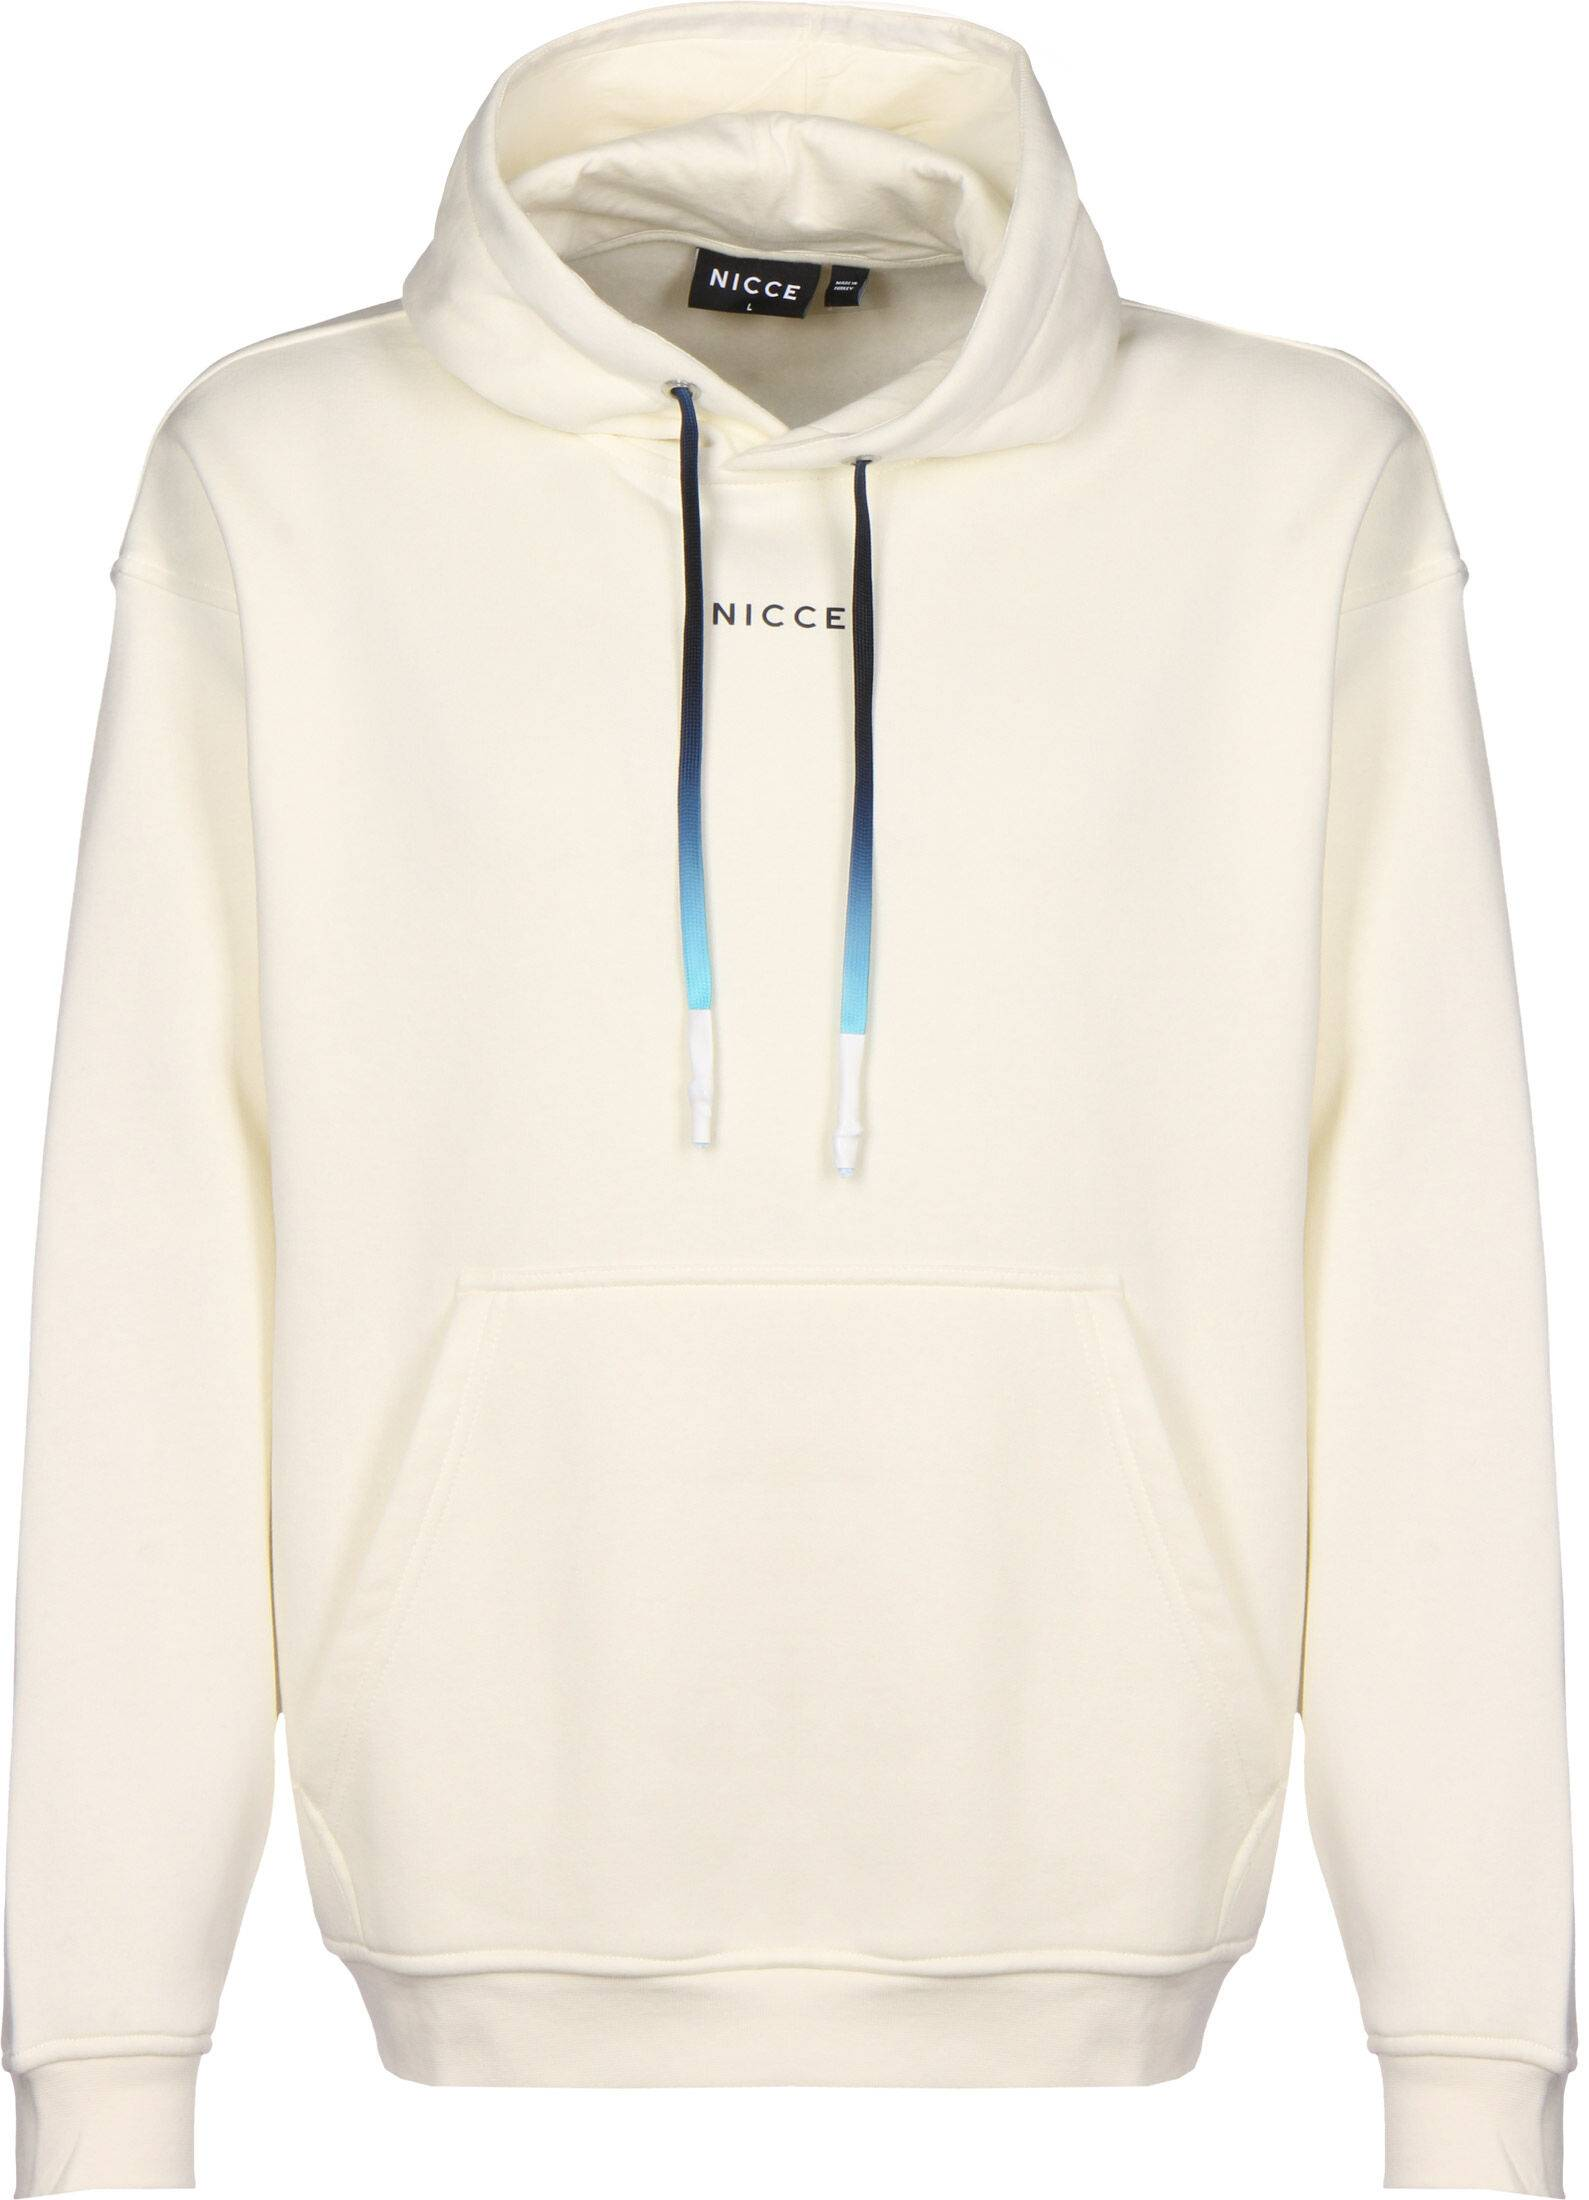 Nicce Zone, taille L, homme, beige